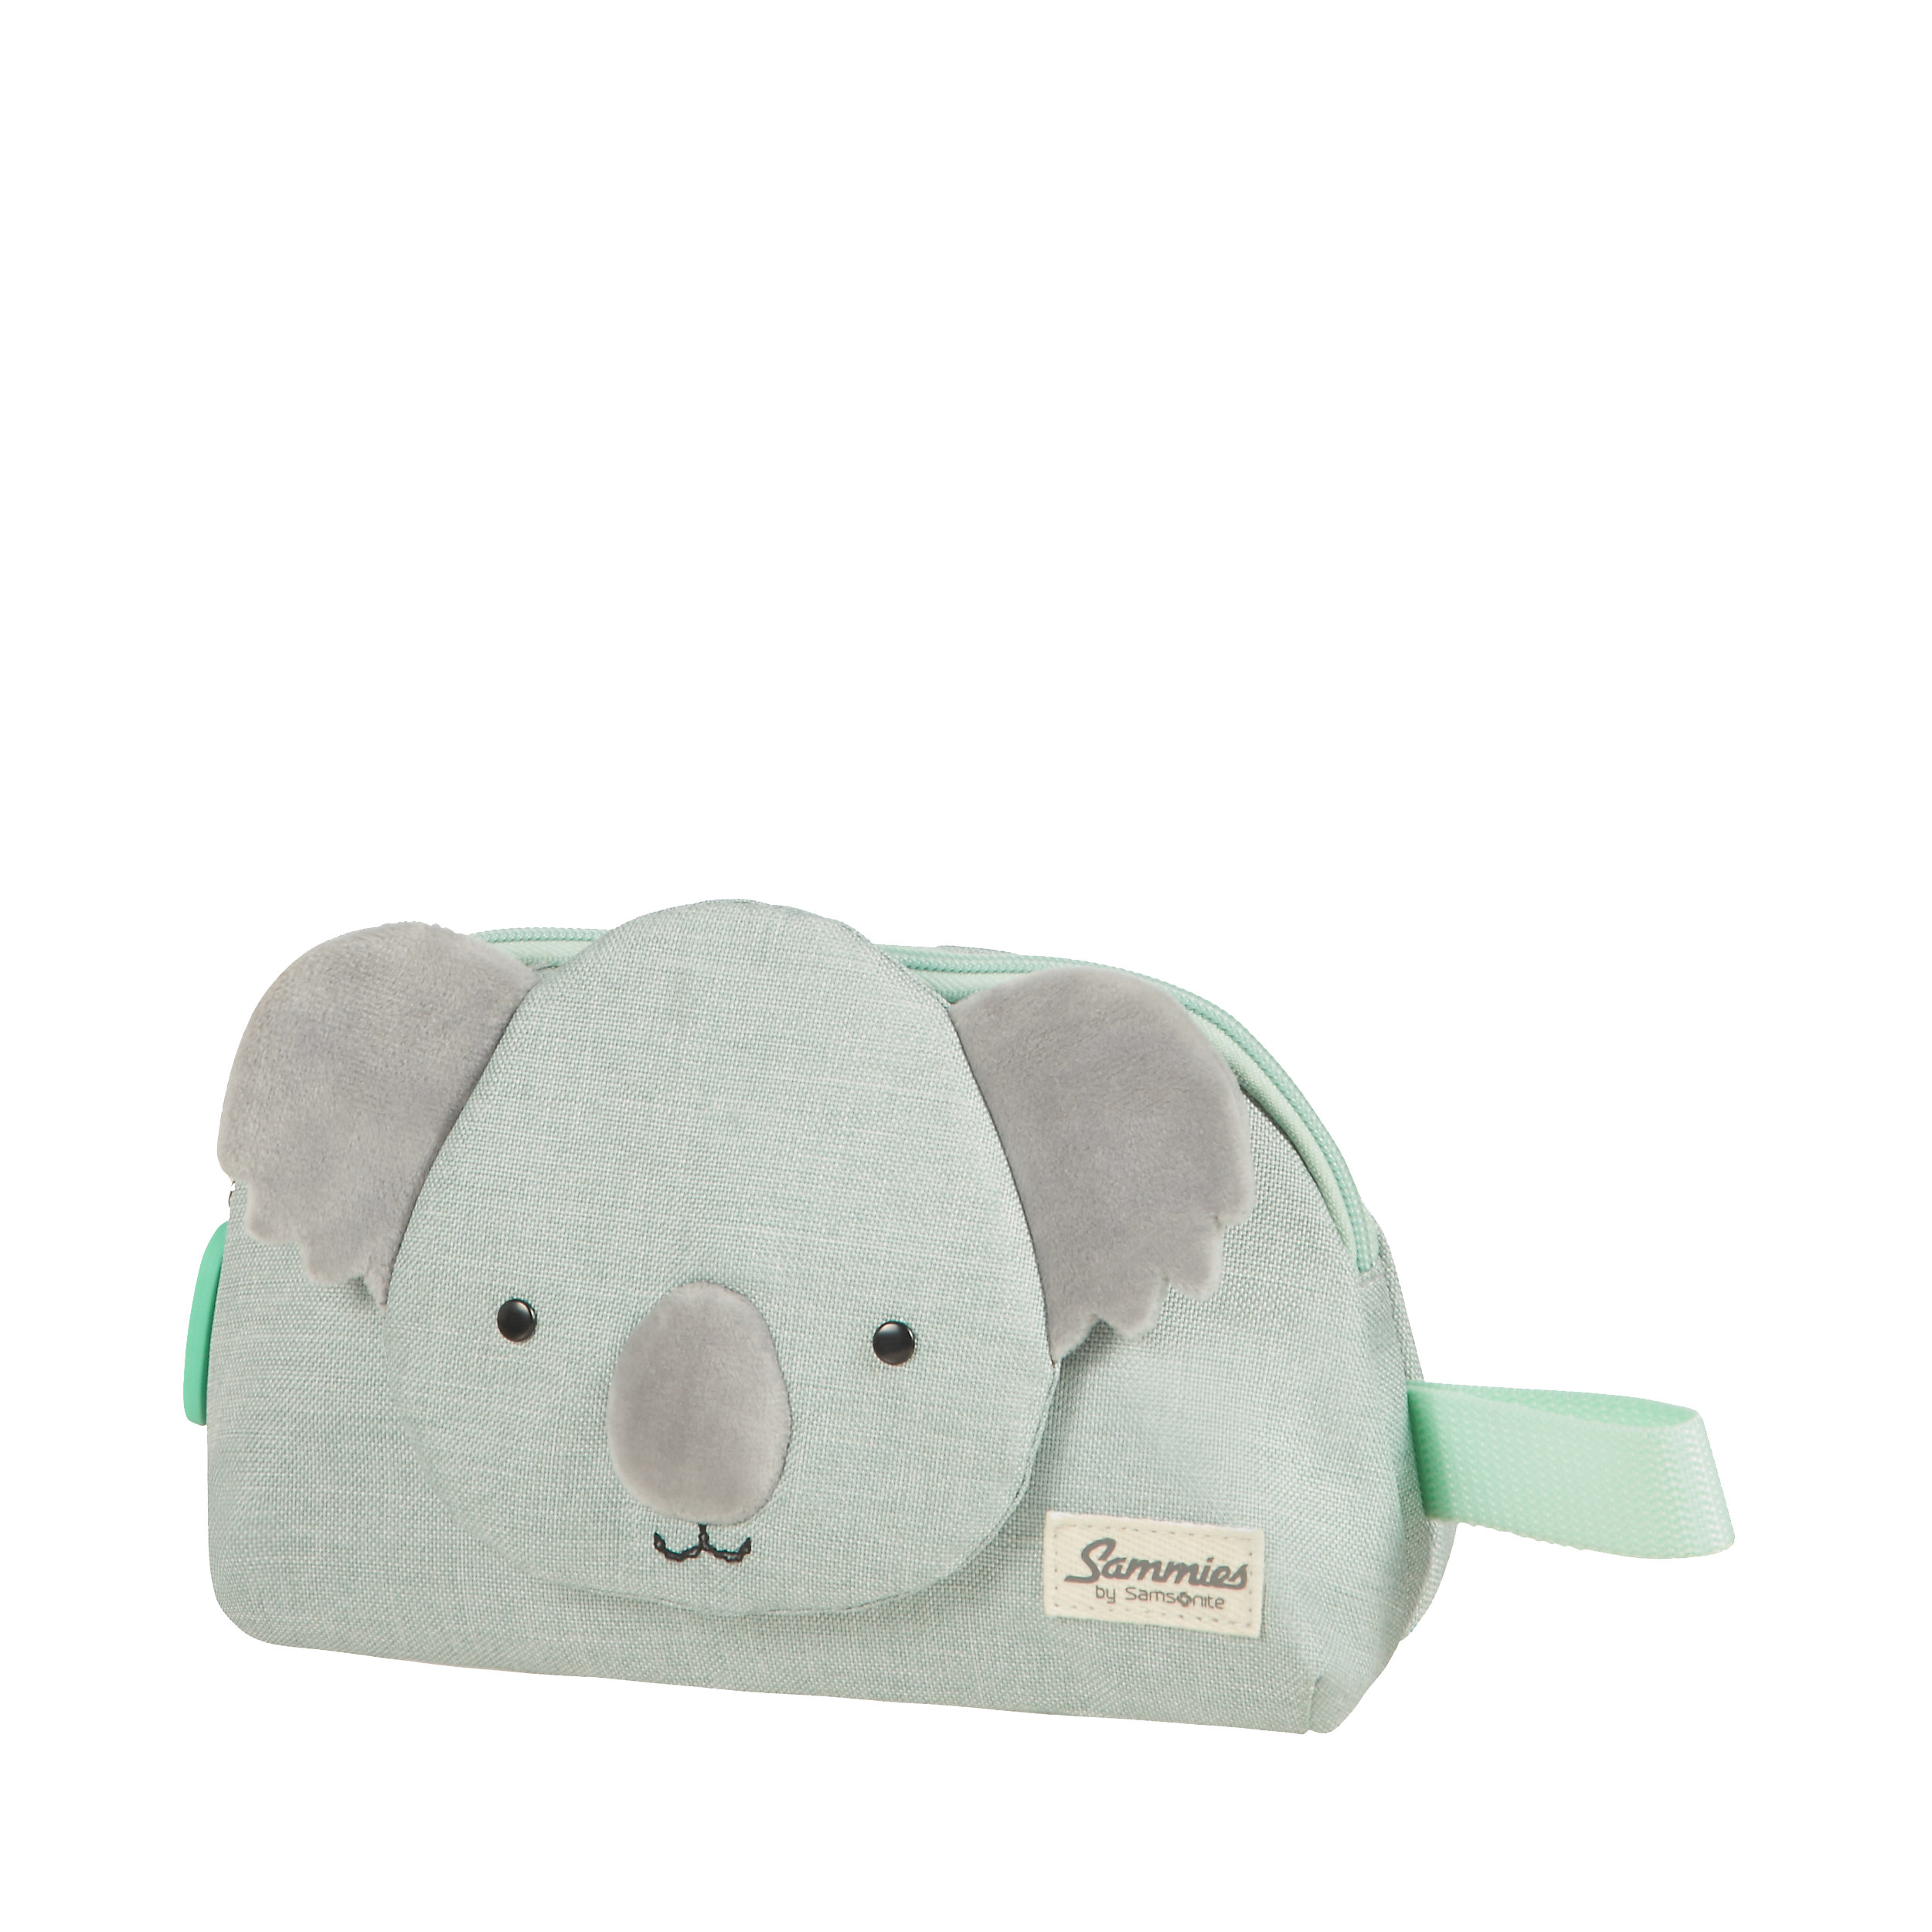 Toilet Bag Koala Kody Happy Sammies 2 Liter